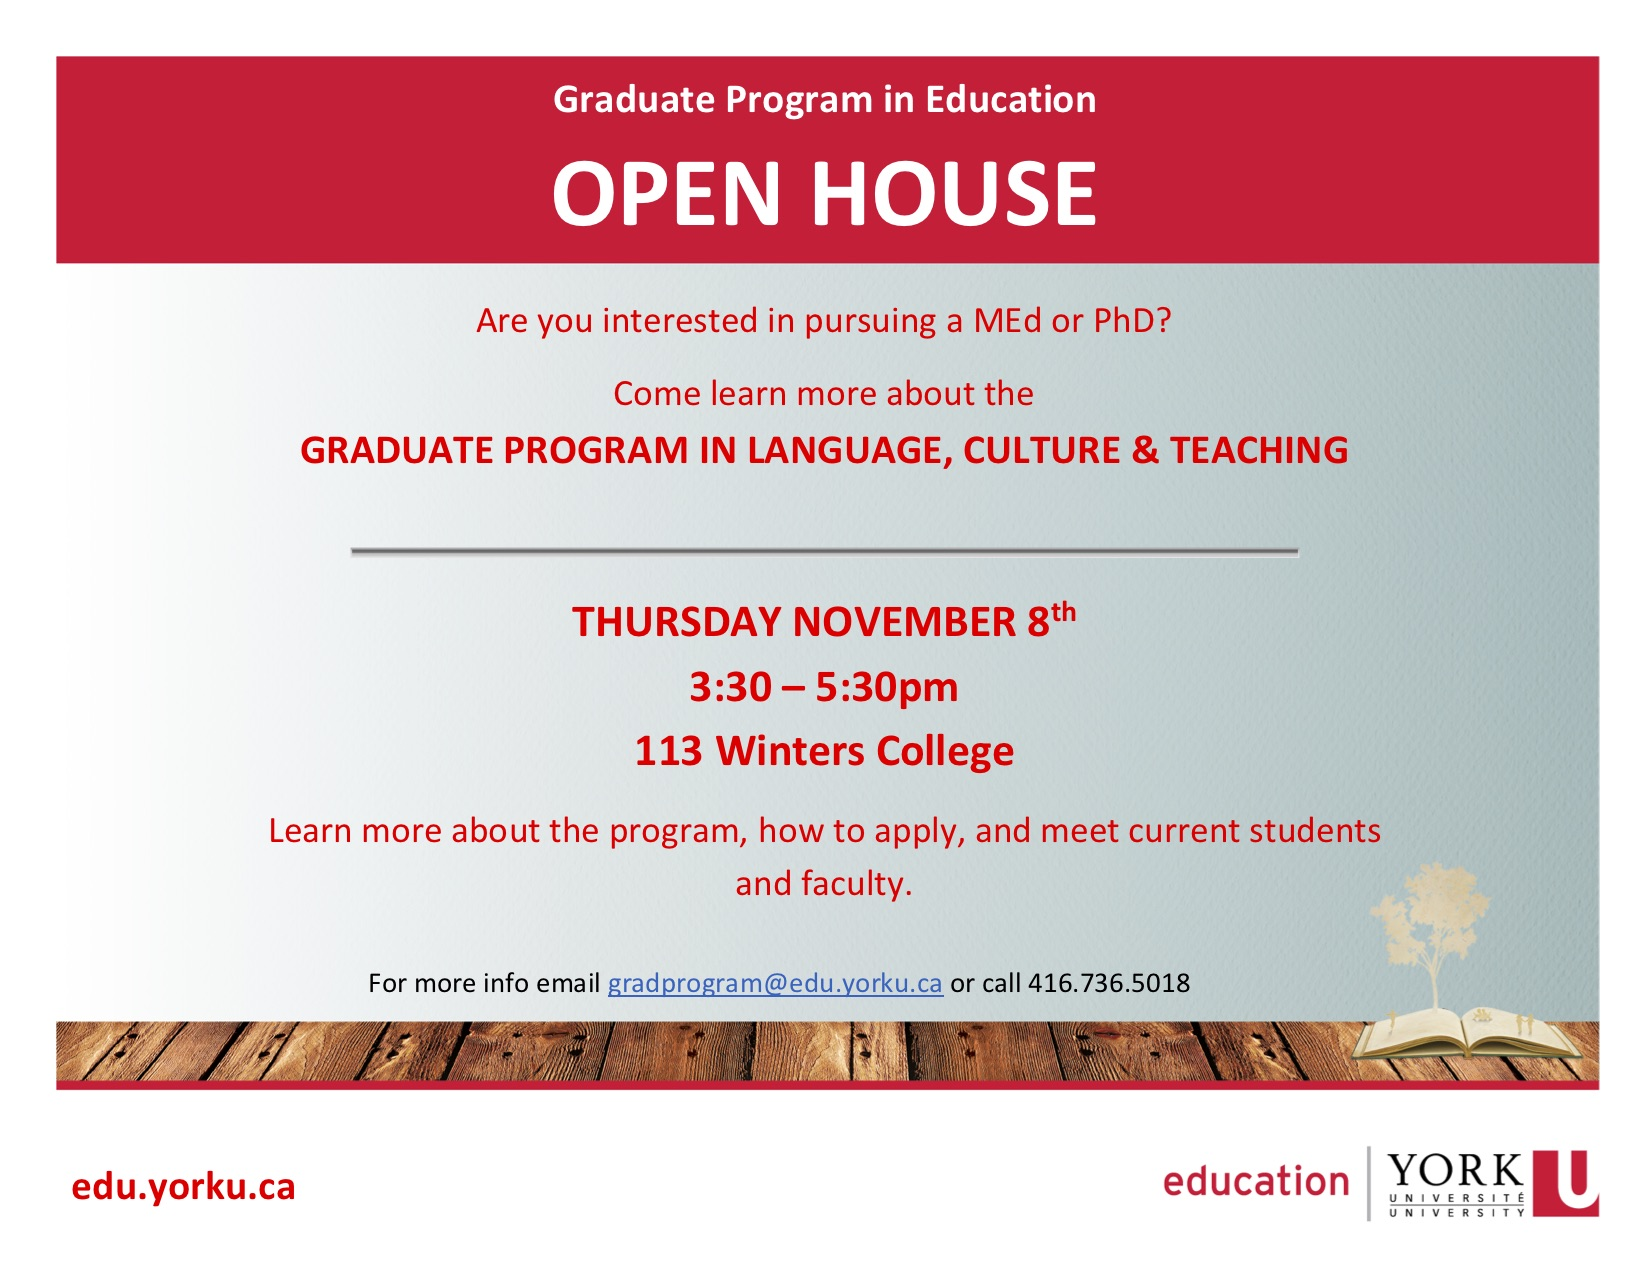 Grad Program Open House flyer